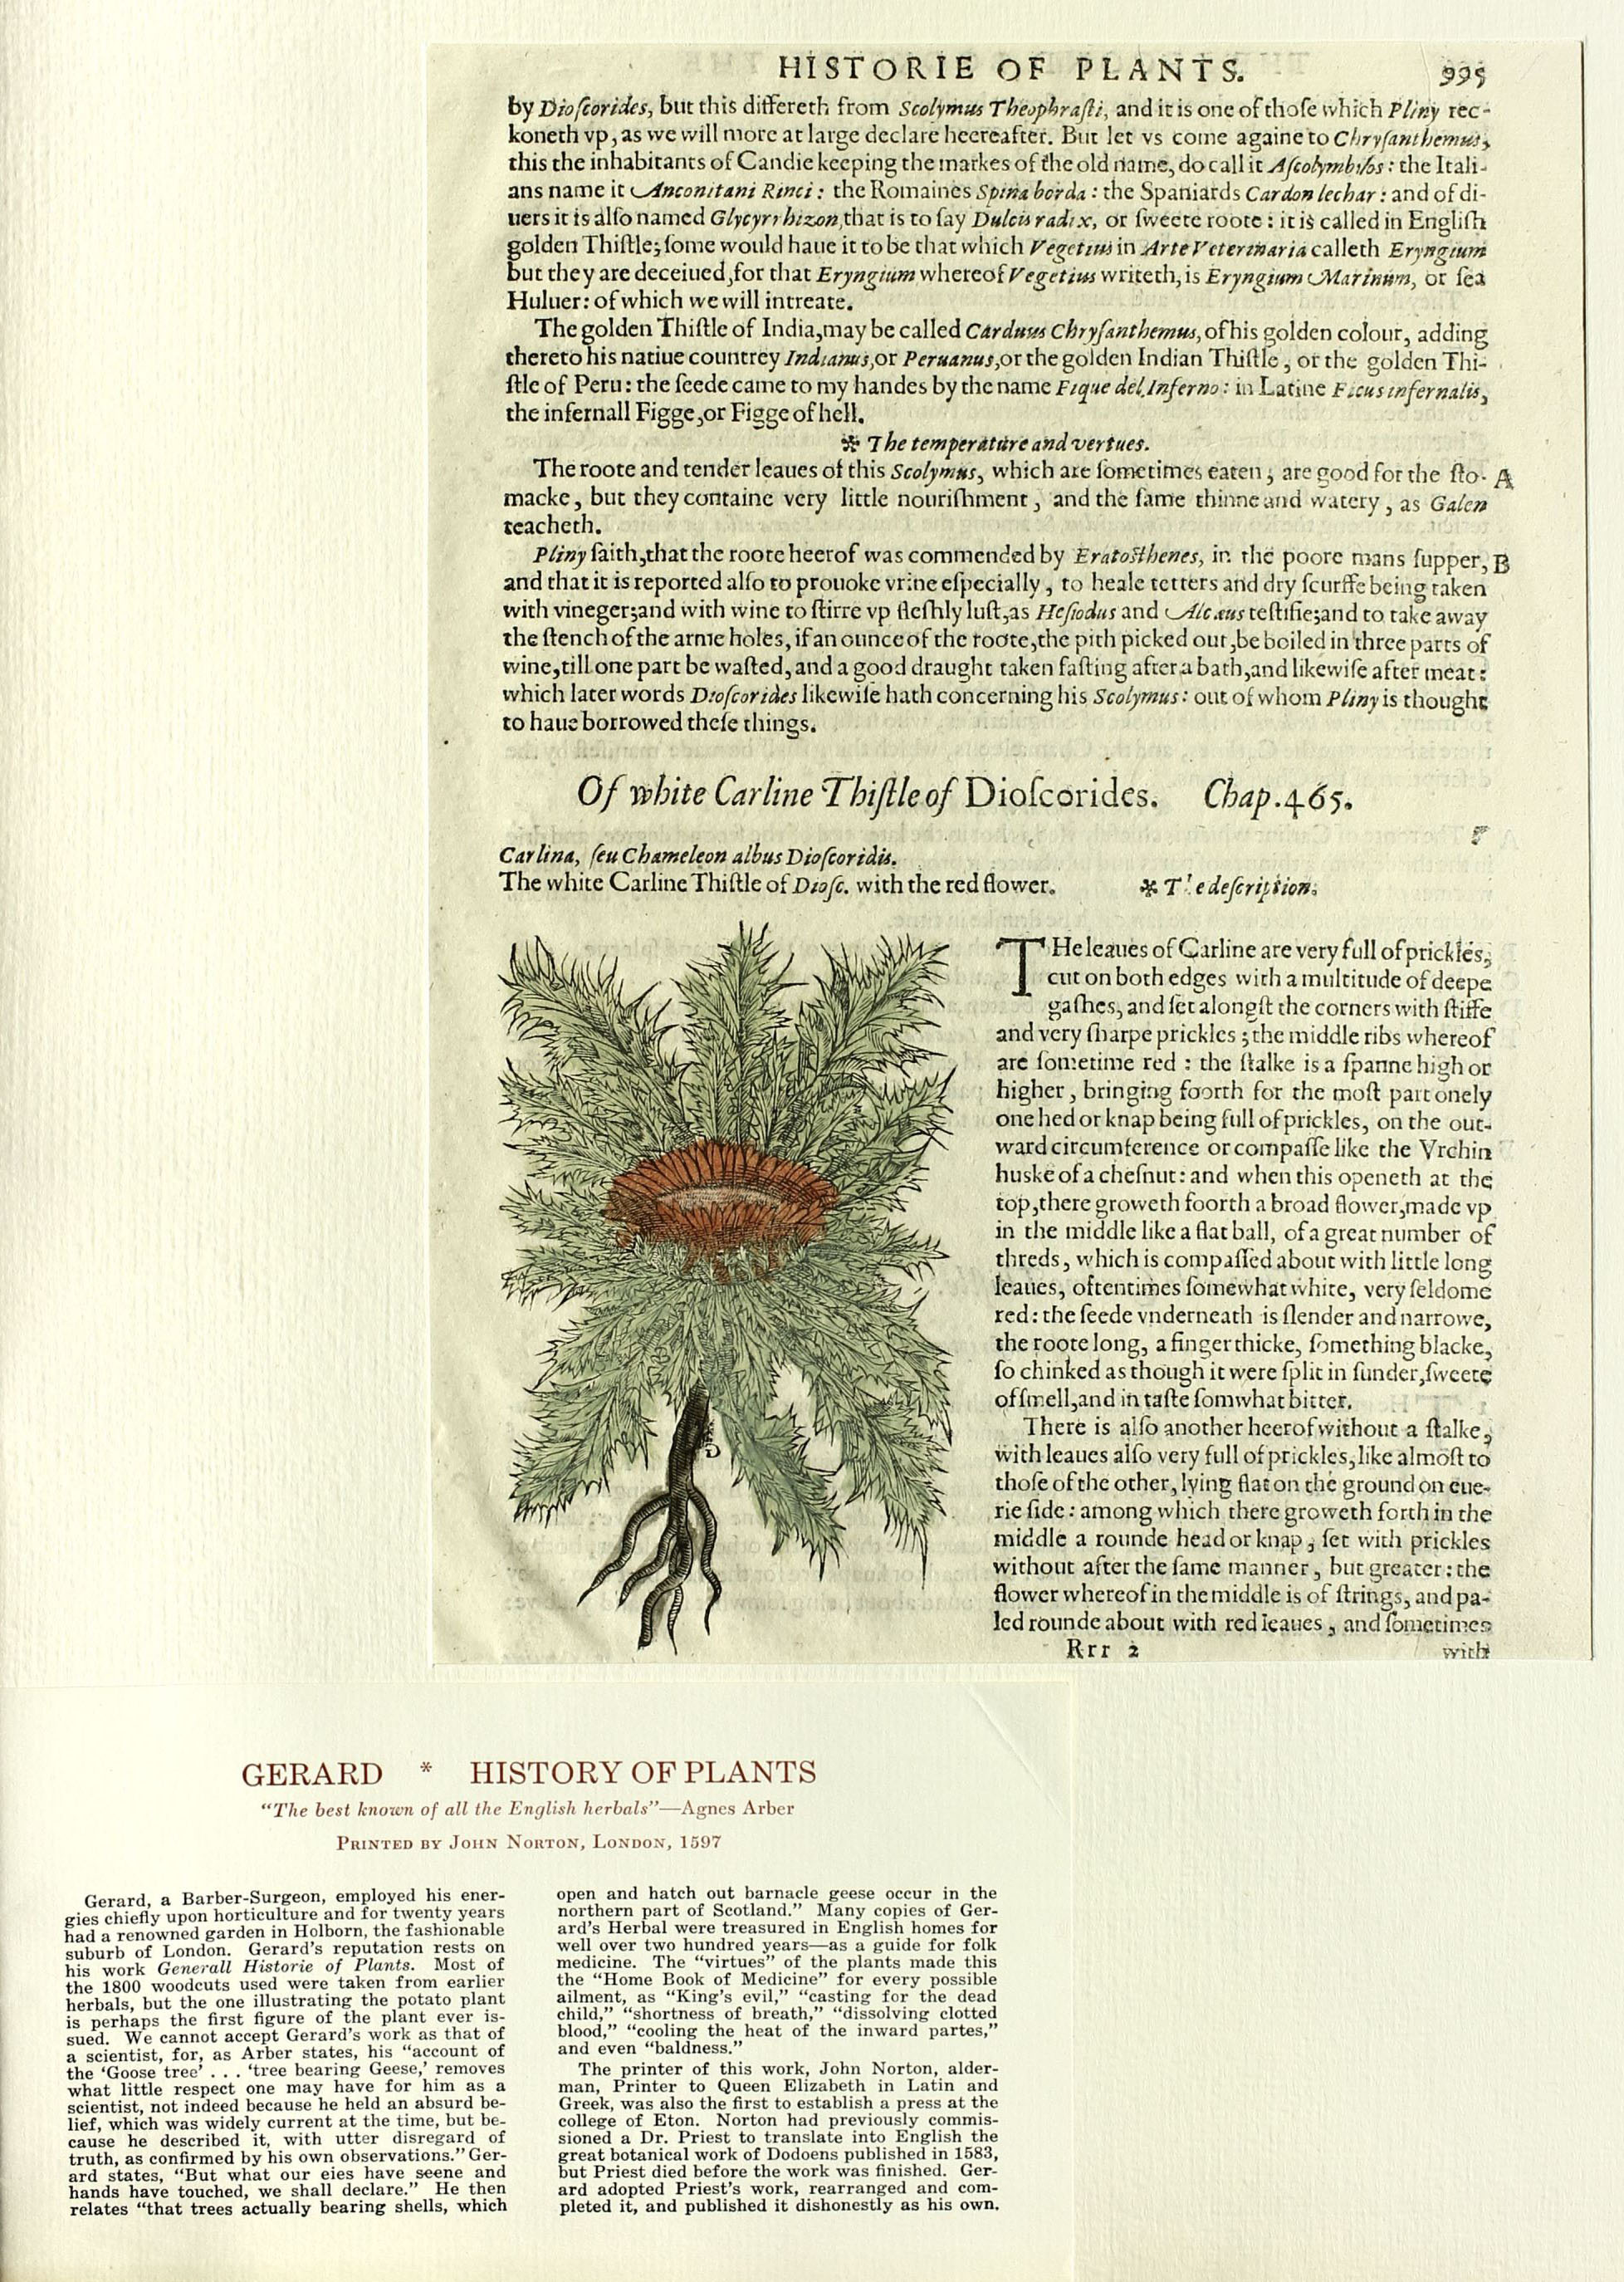 Image of leaf with explanatory note